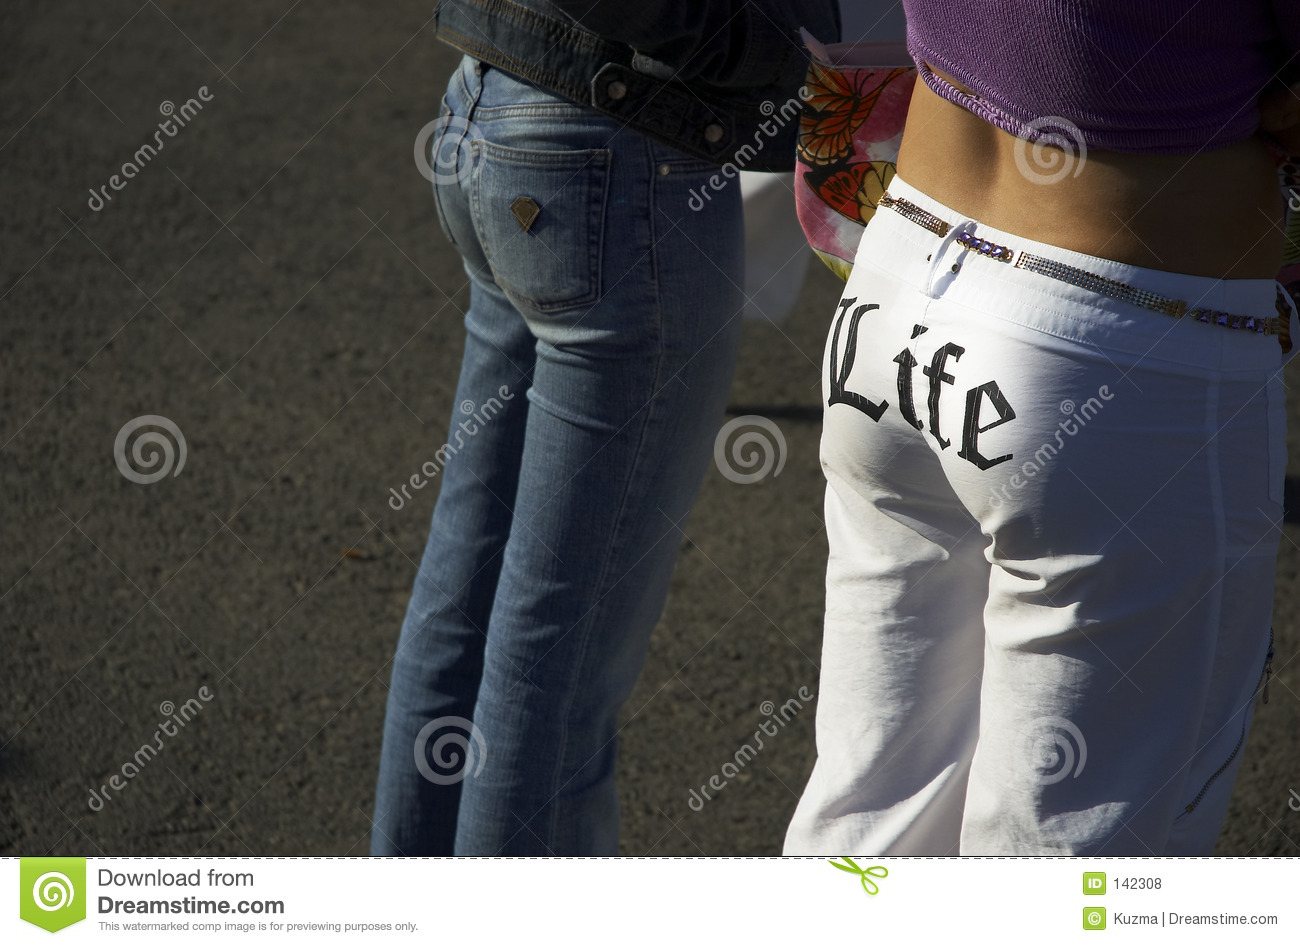 Sexy Bums Royalty Free Stock Photos - Image: 142308